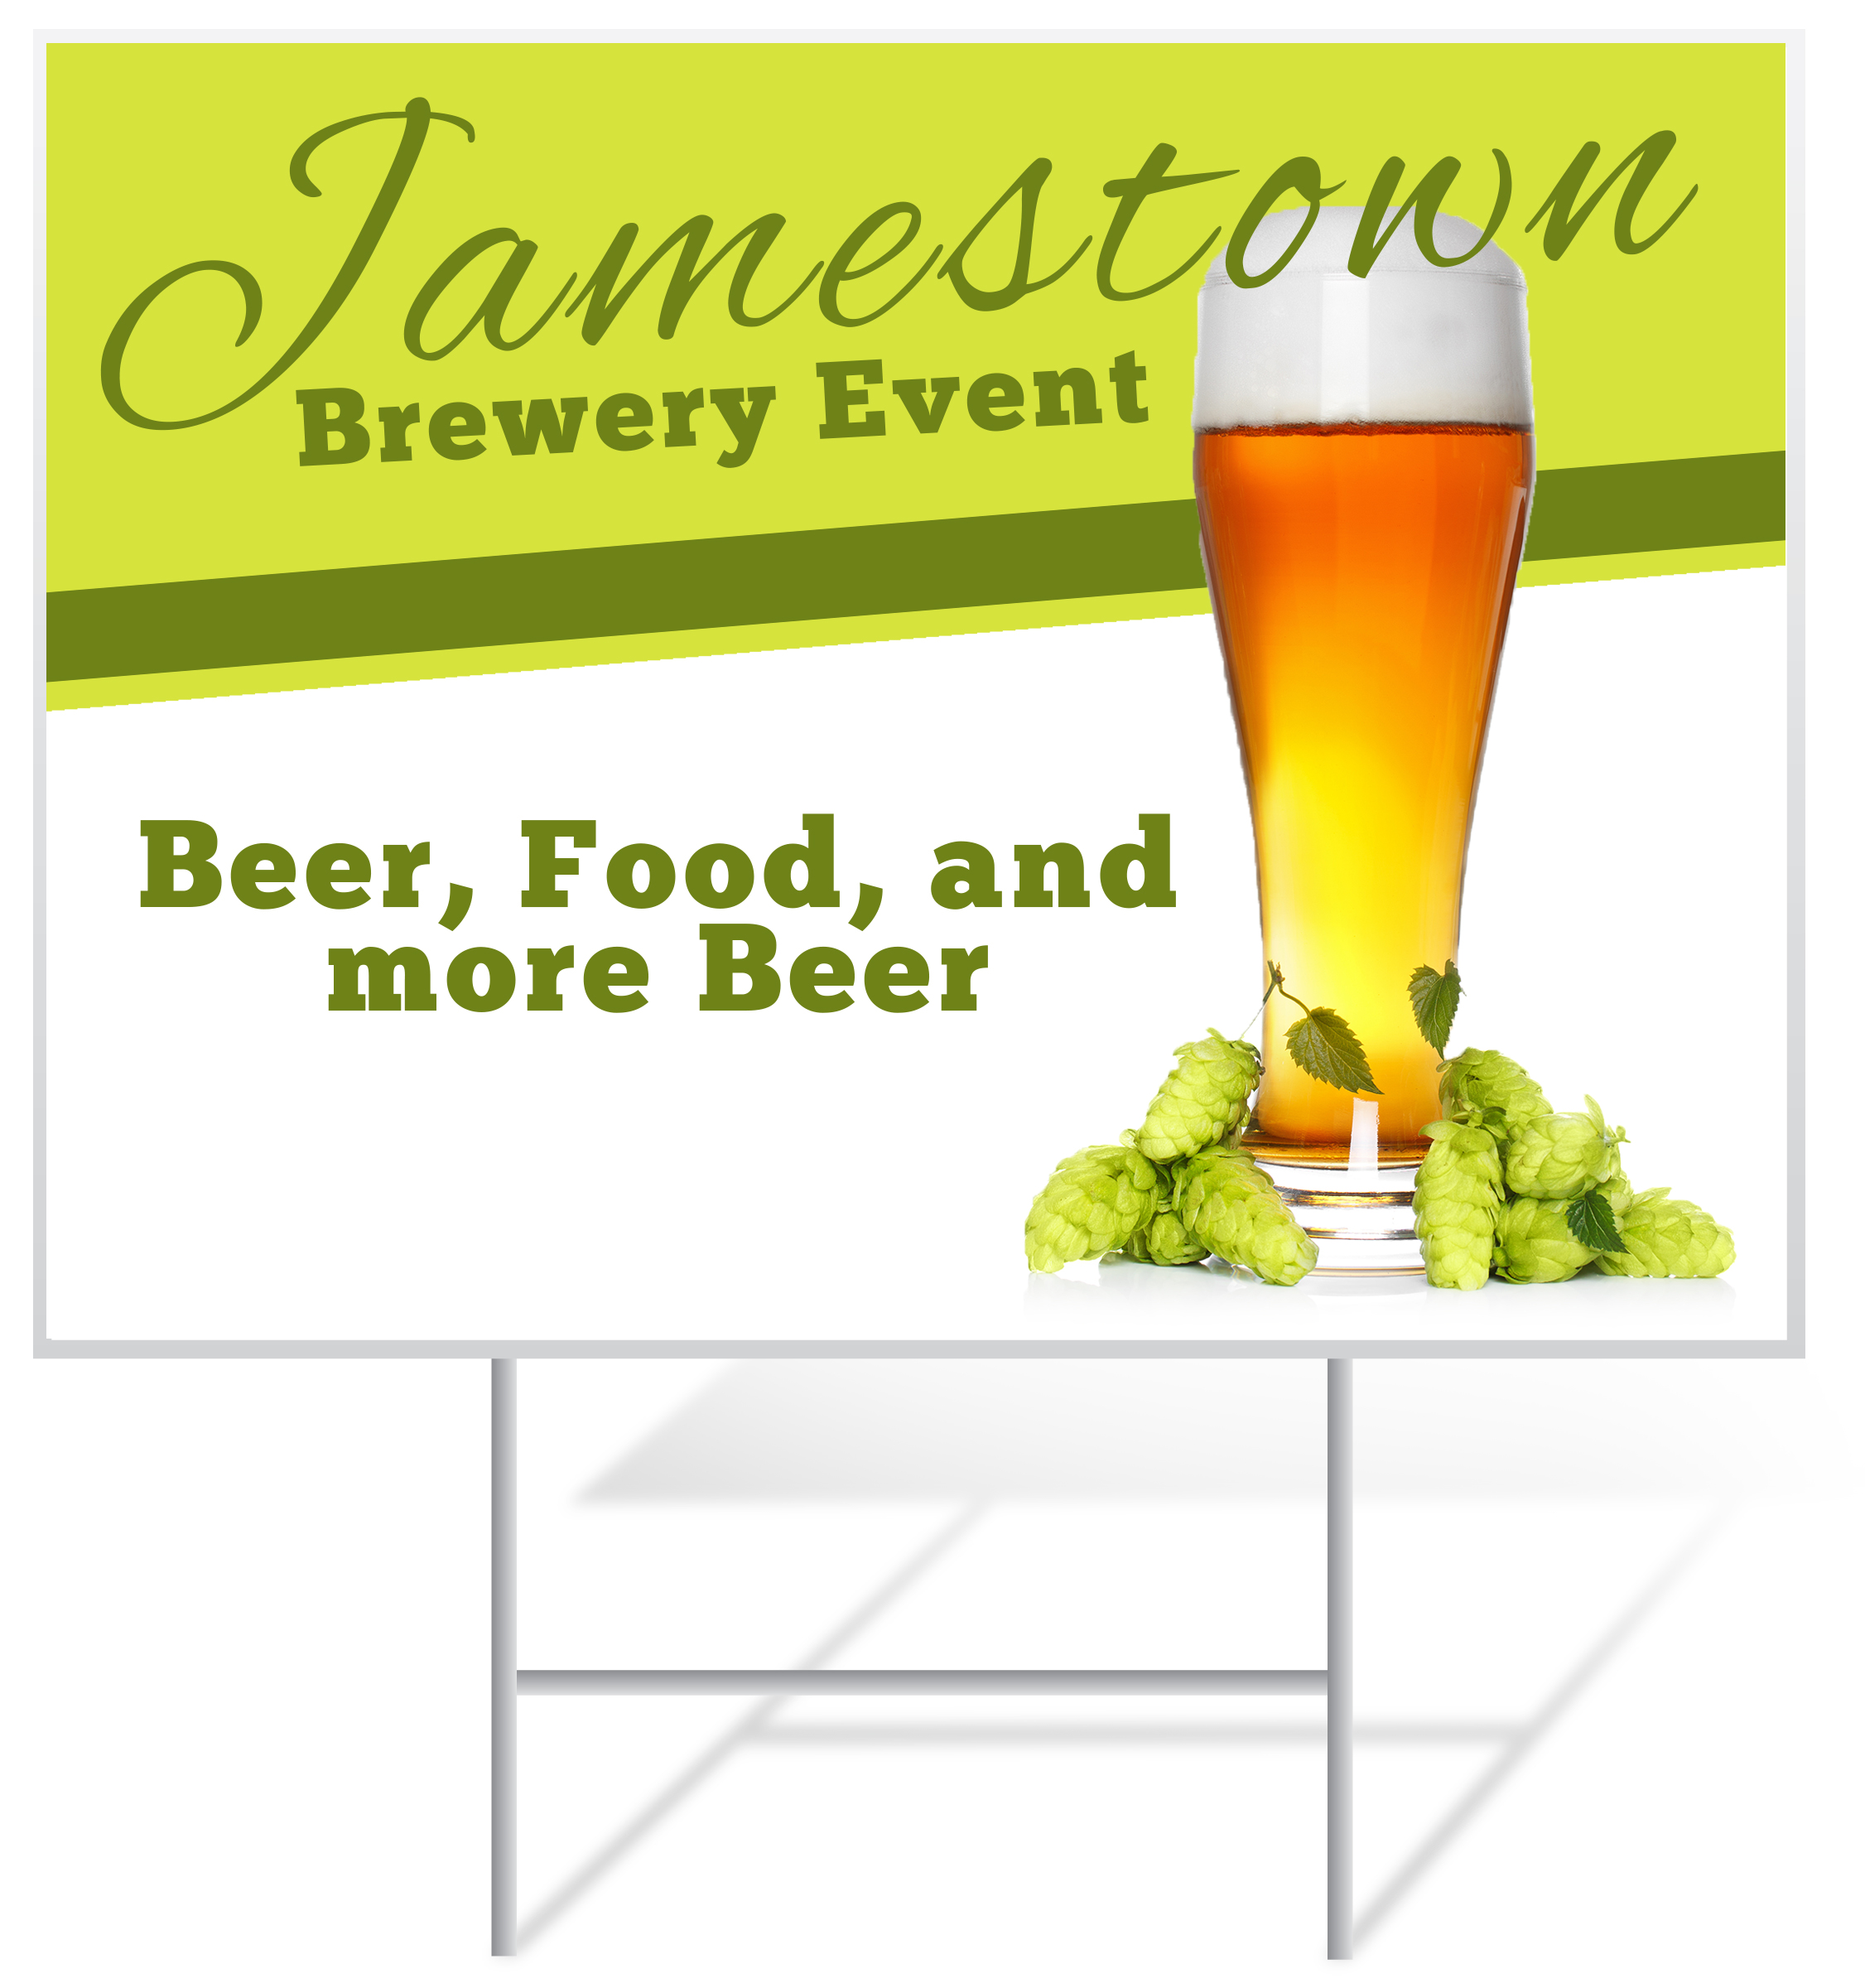 Brewery Lawn Sign Example | LawnSigns.com